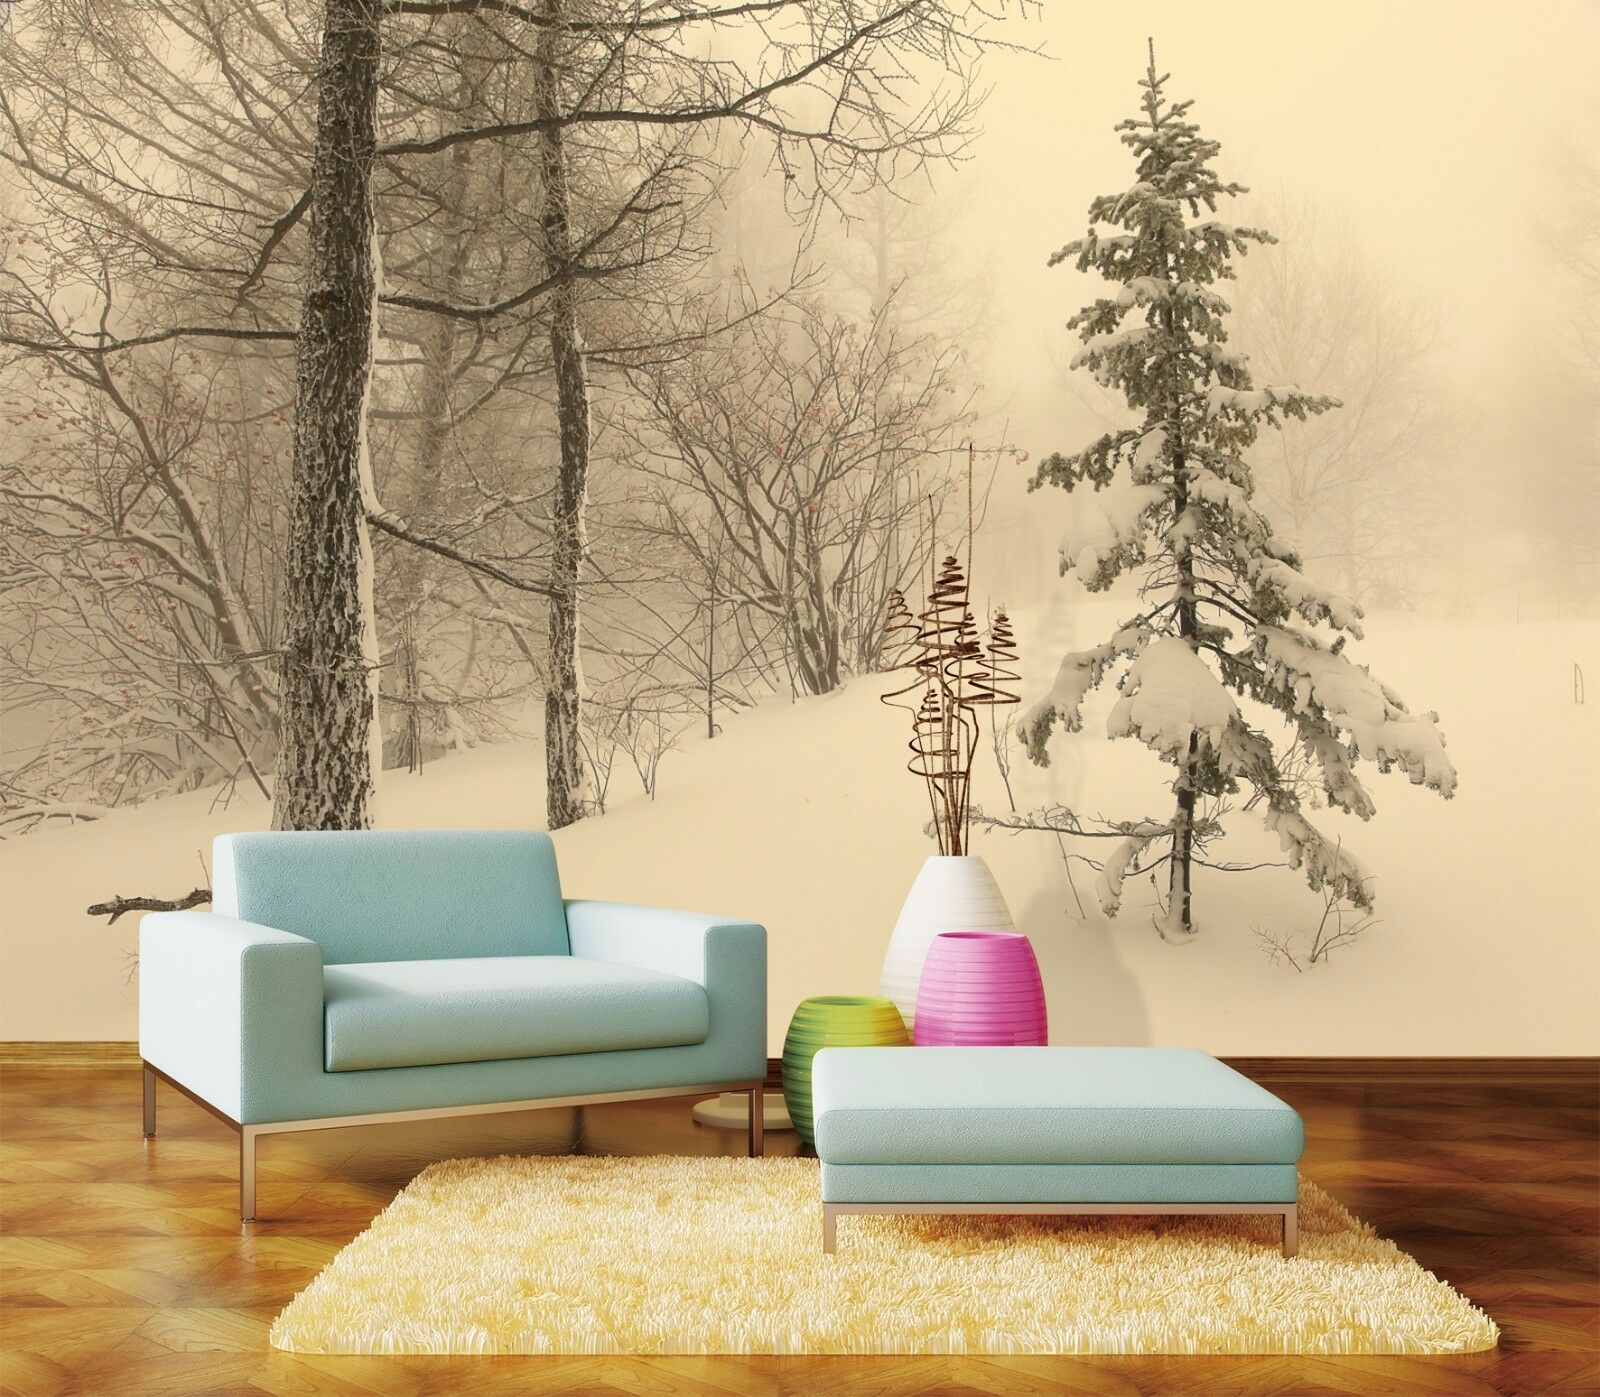 3D Tree Snow Road 6 Wallpaper Murals Wall Print Wallpaper Mural AJ WALL AU Lemon